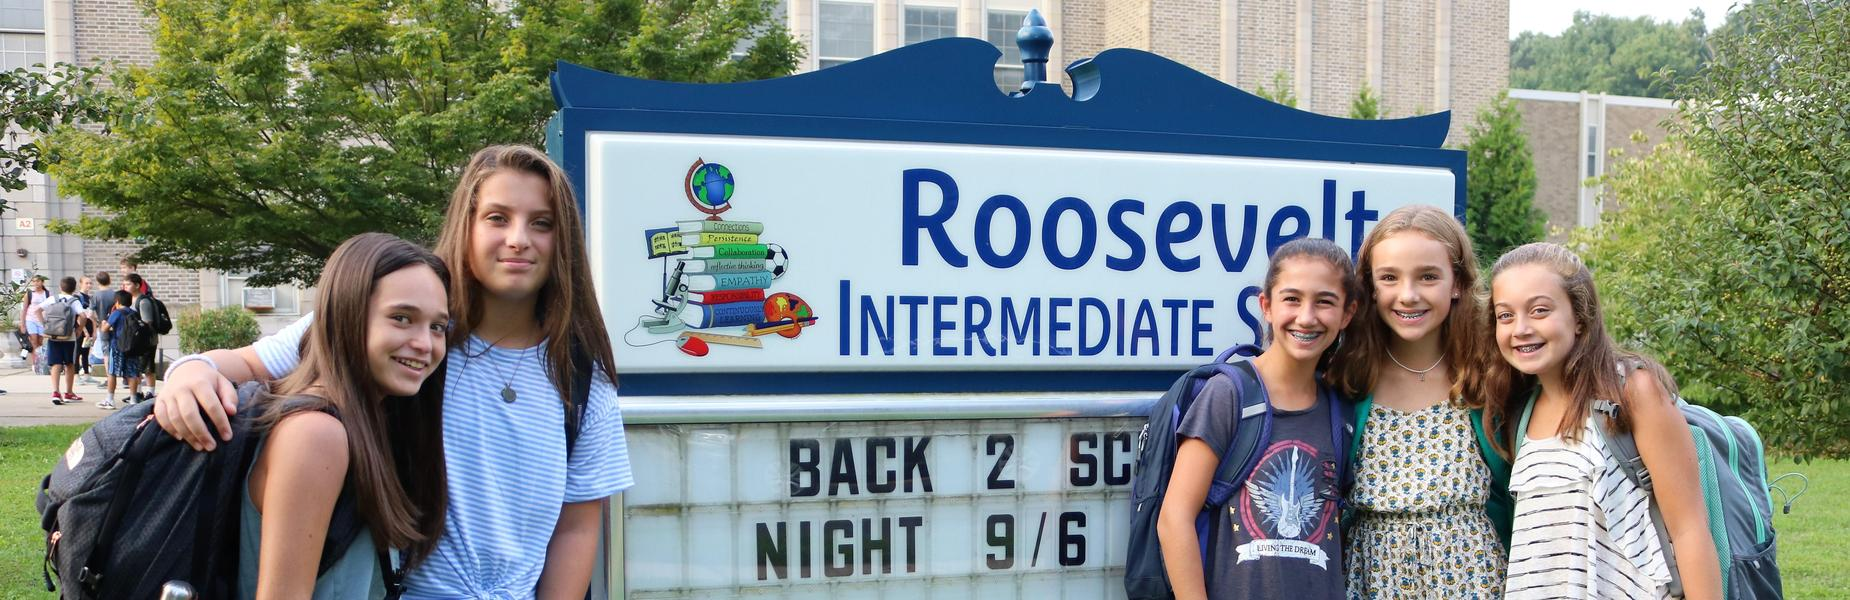 Roosevelt Intermediate School students pose in front school sign during the first week of the new school year.